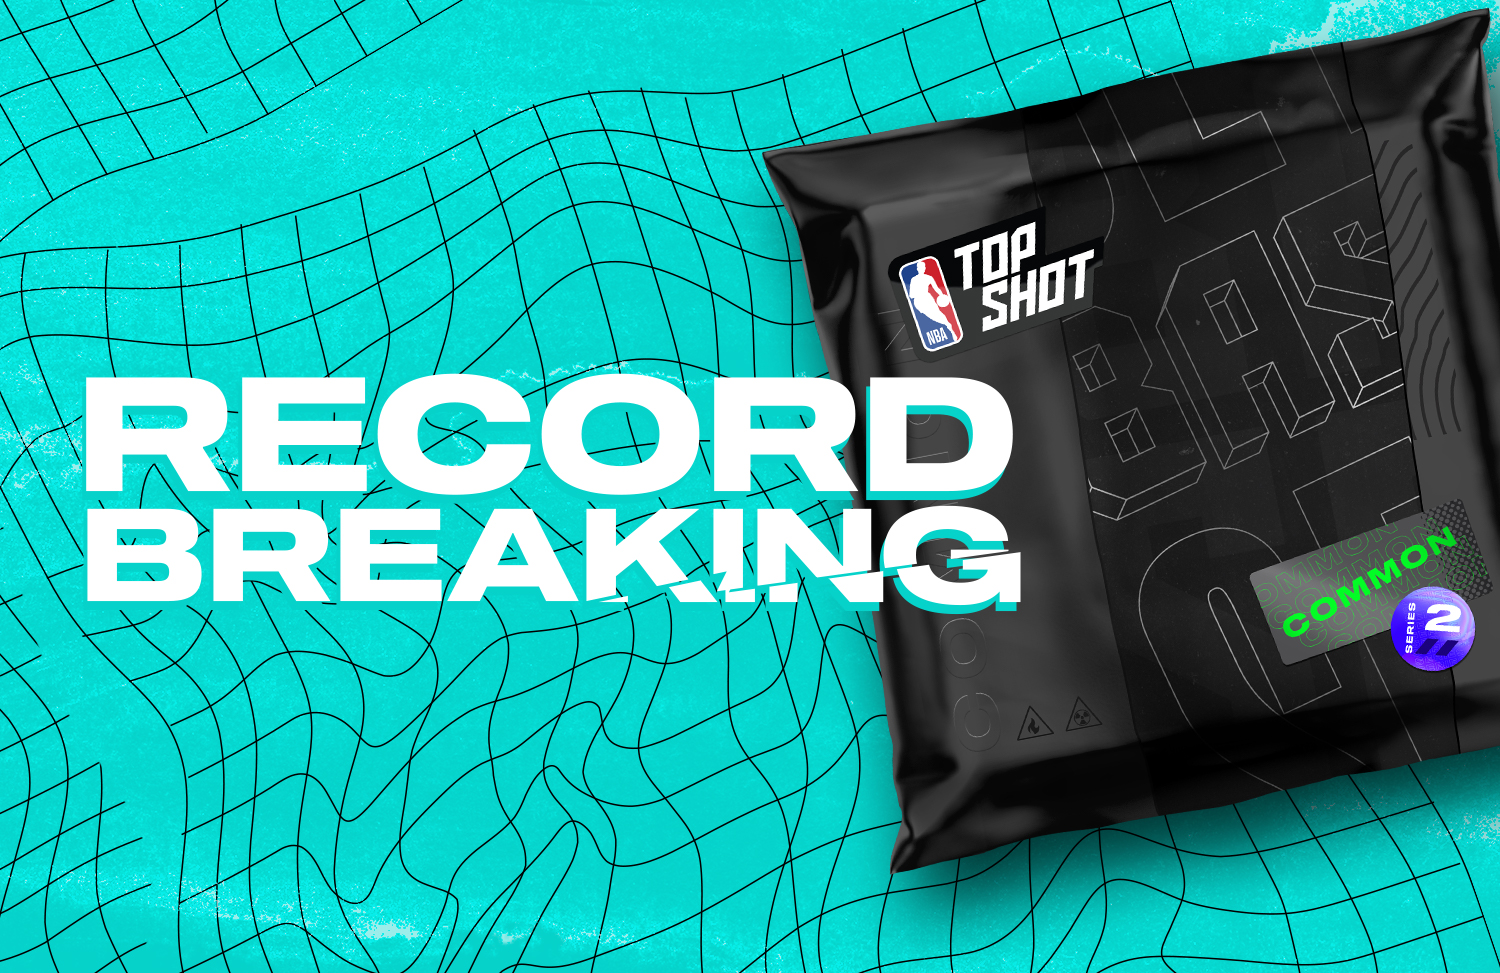 50K+ base set packs sold. $2M in Marketplace transactions. This has been an incredible week for NBA Top Shot, and it's still going strong.